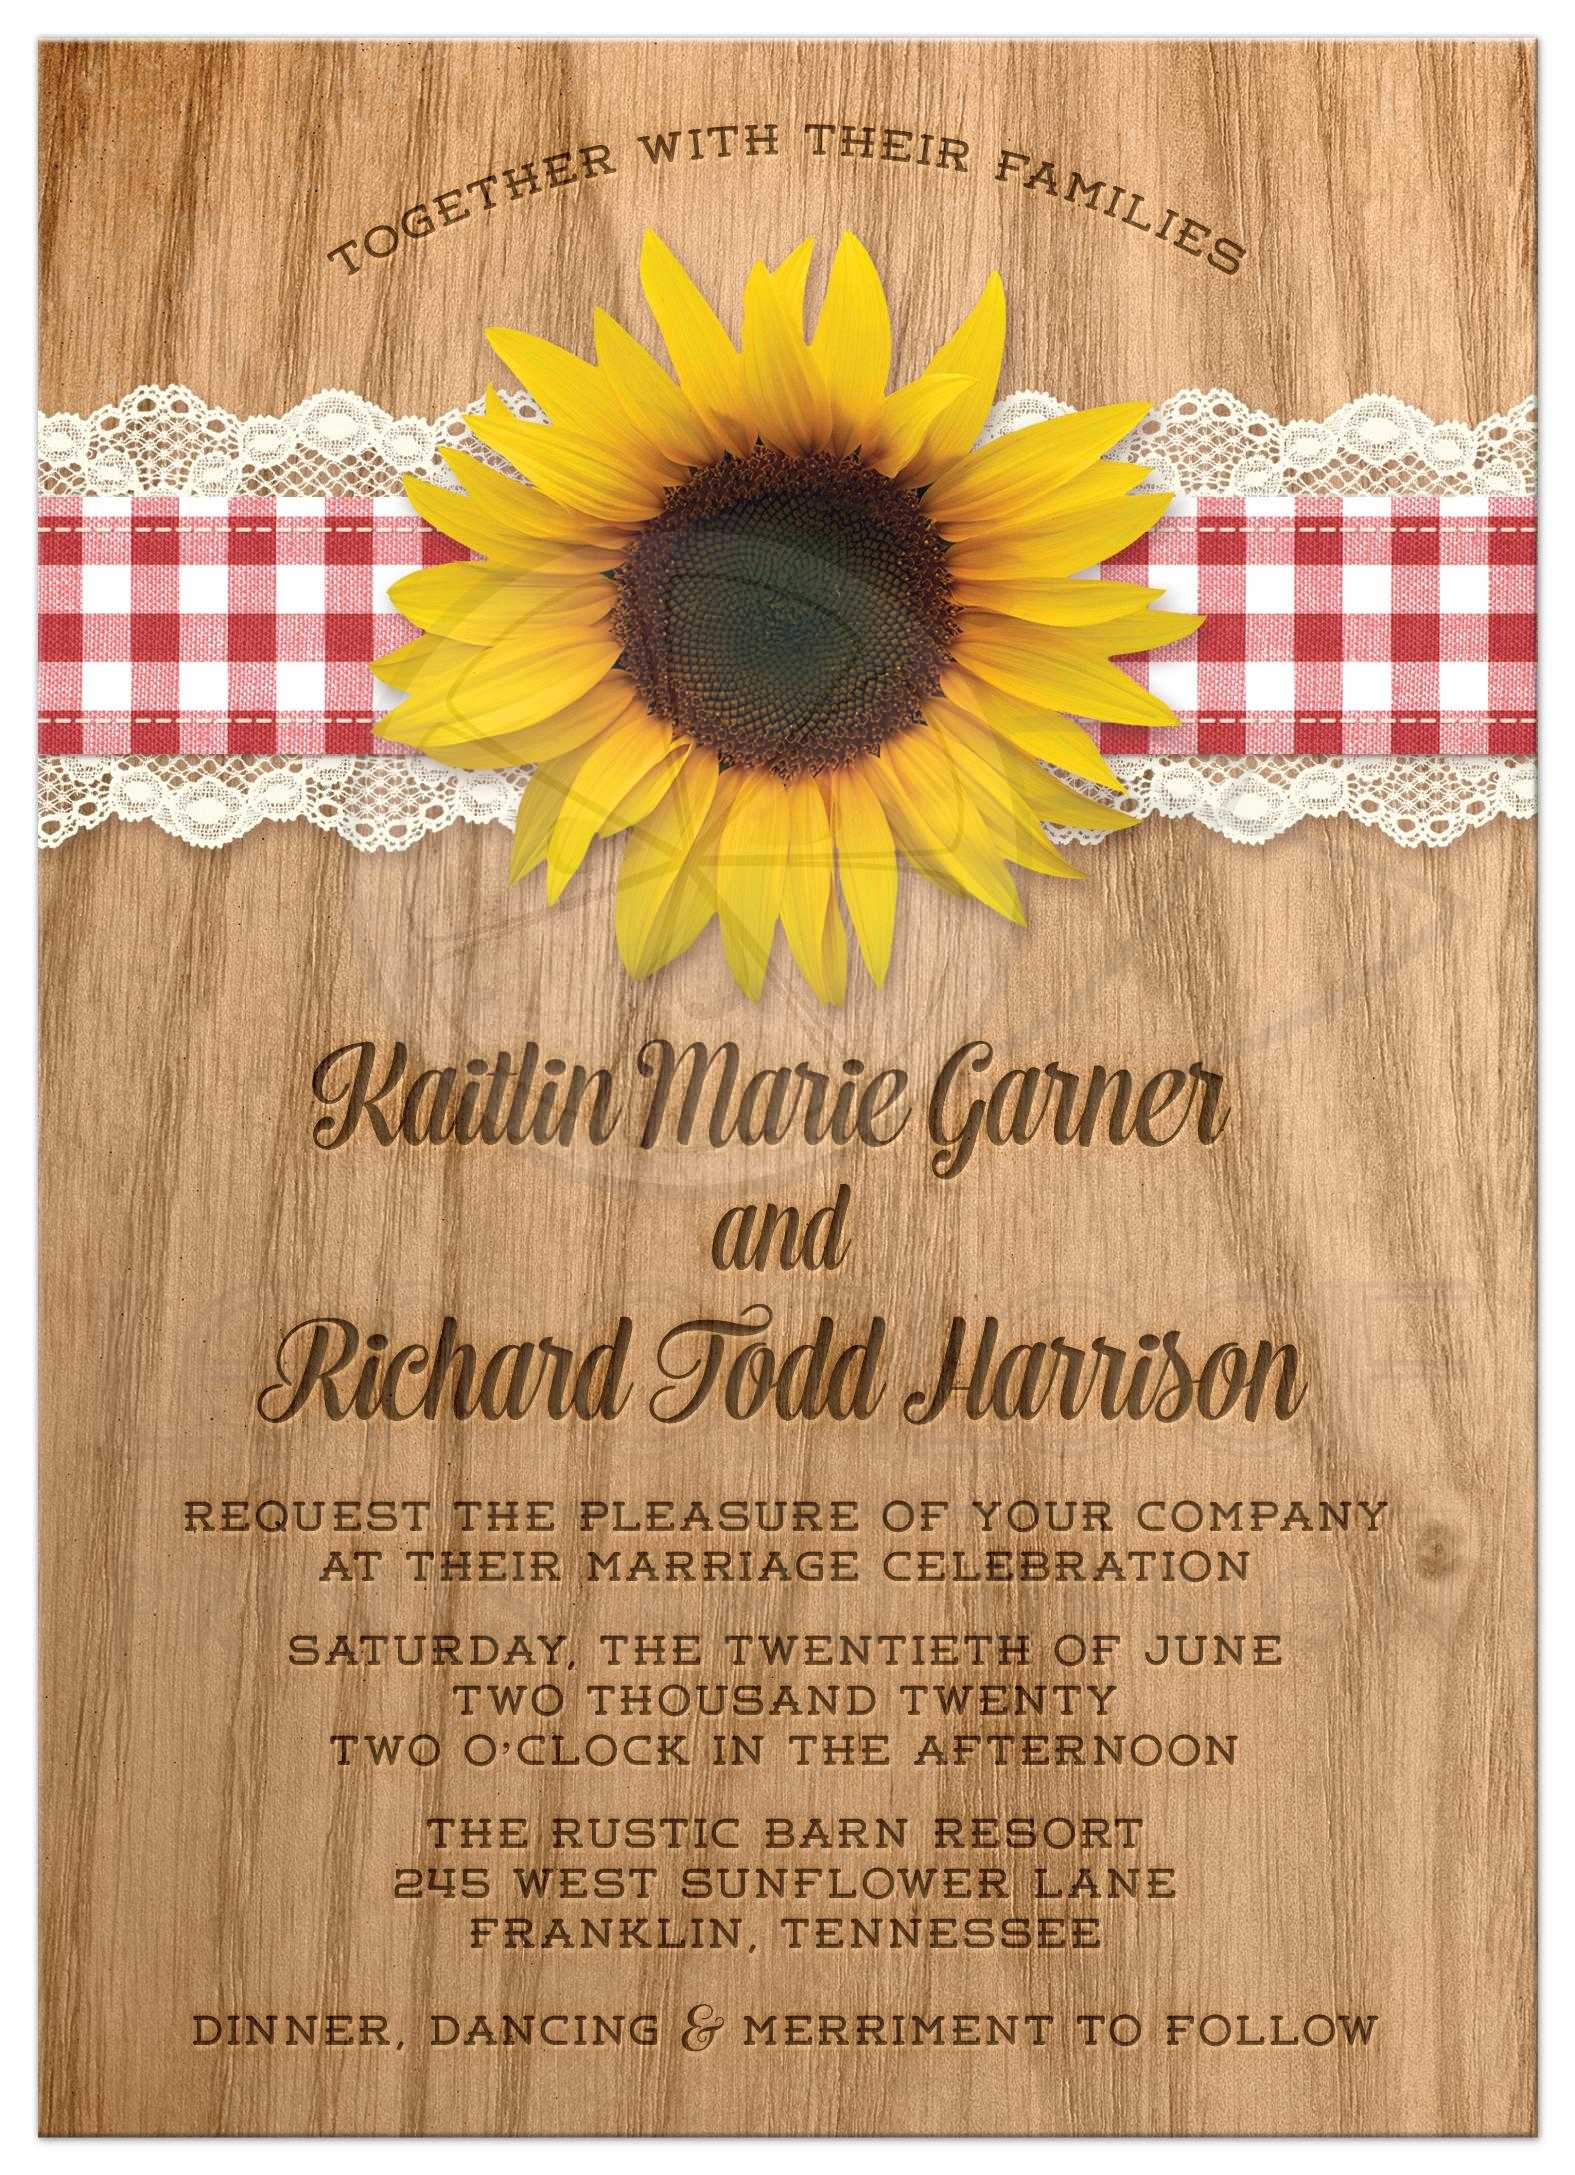 Wedding Invitations Rustic Gingham Lace Sunflower - Sunflower wedding invitations templates